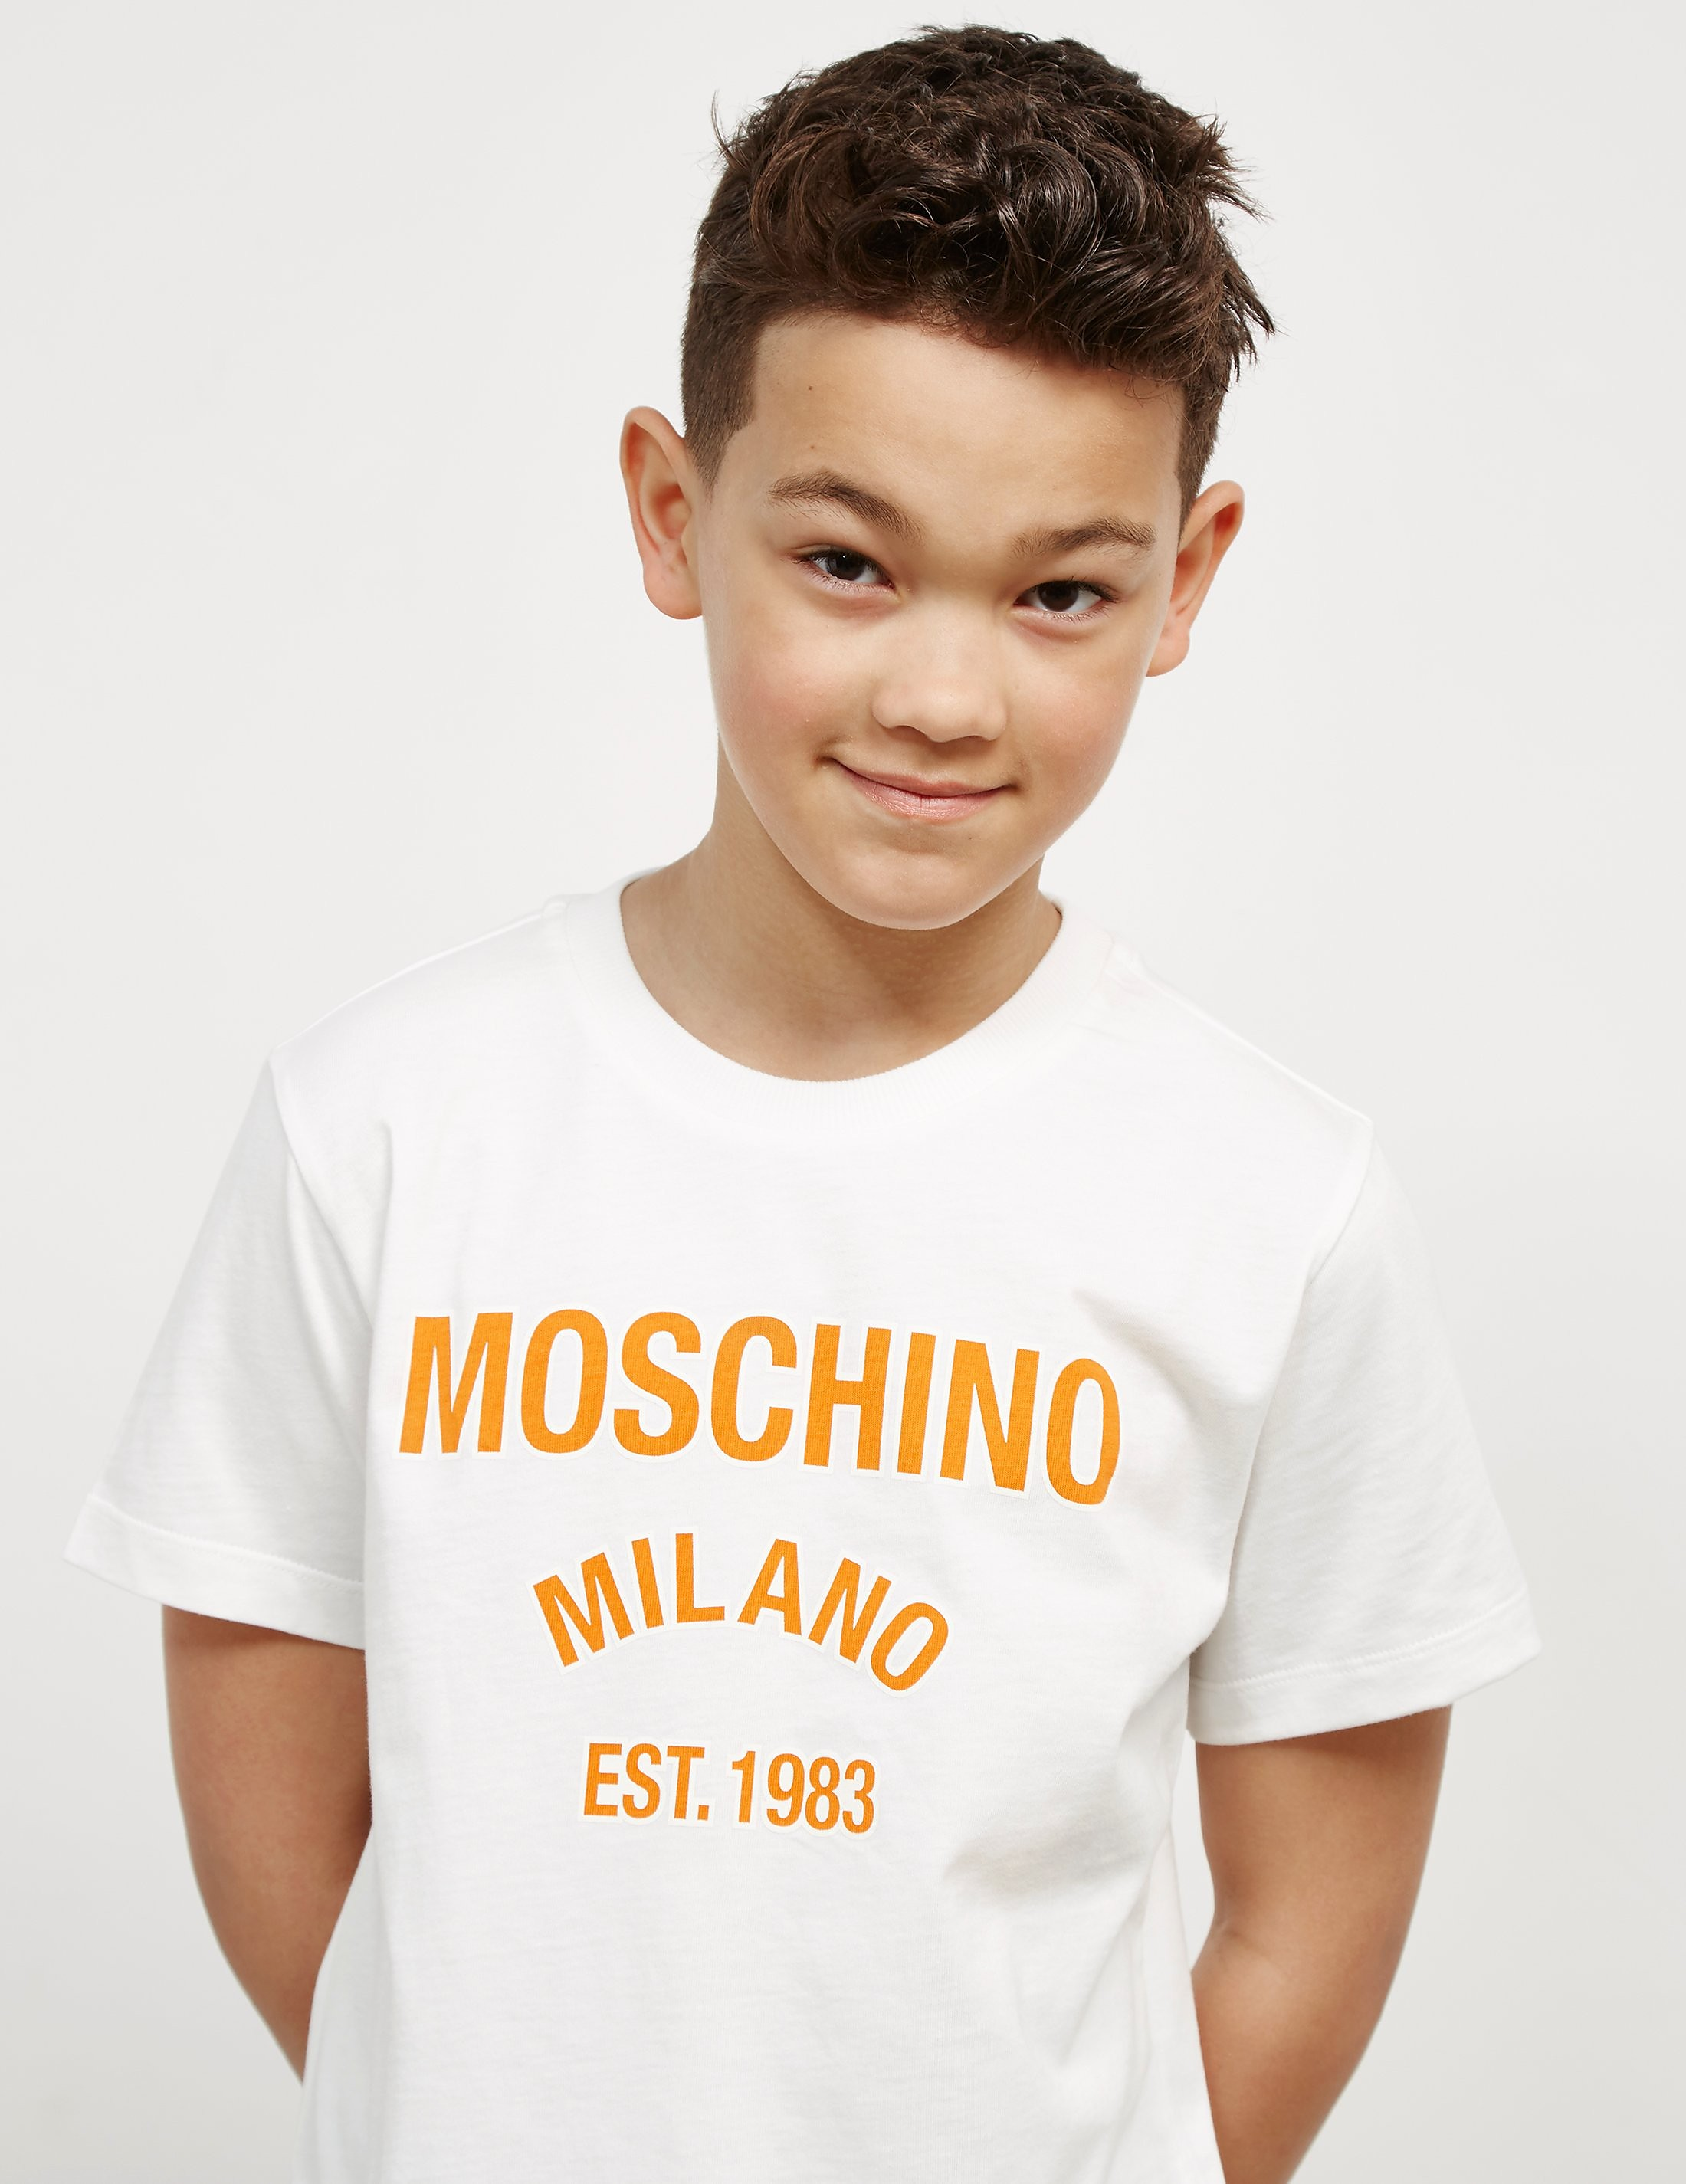 Moschino T-Shirt and Shorts Set